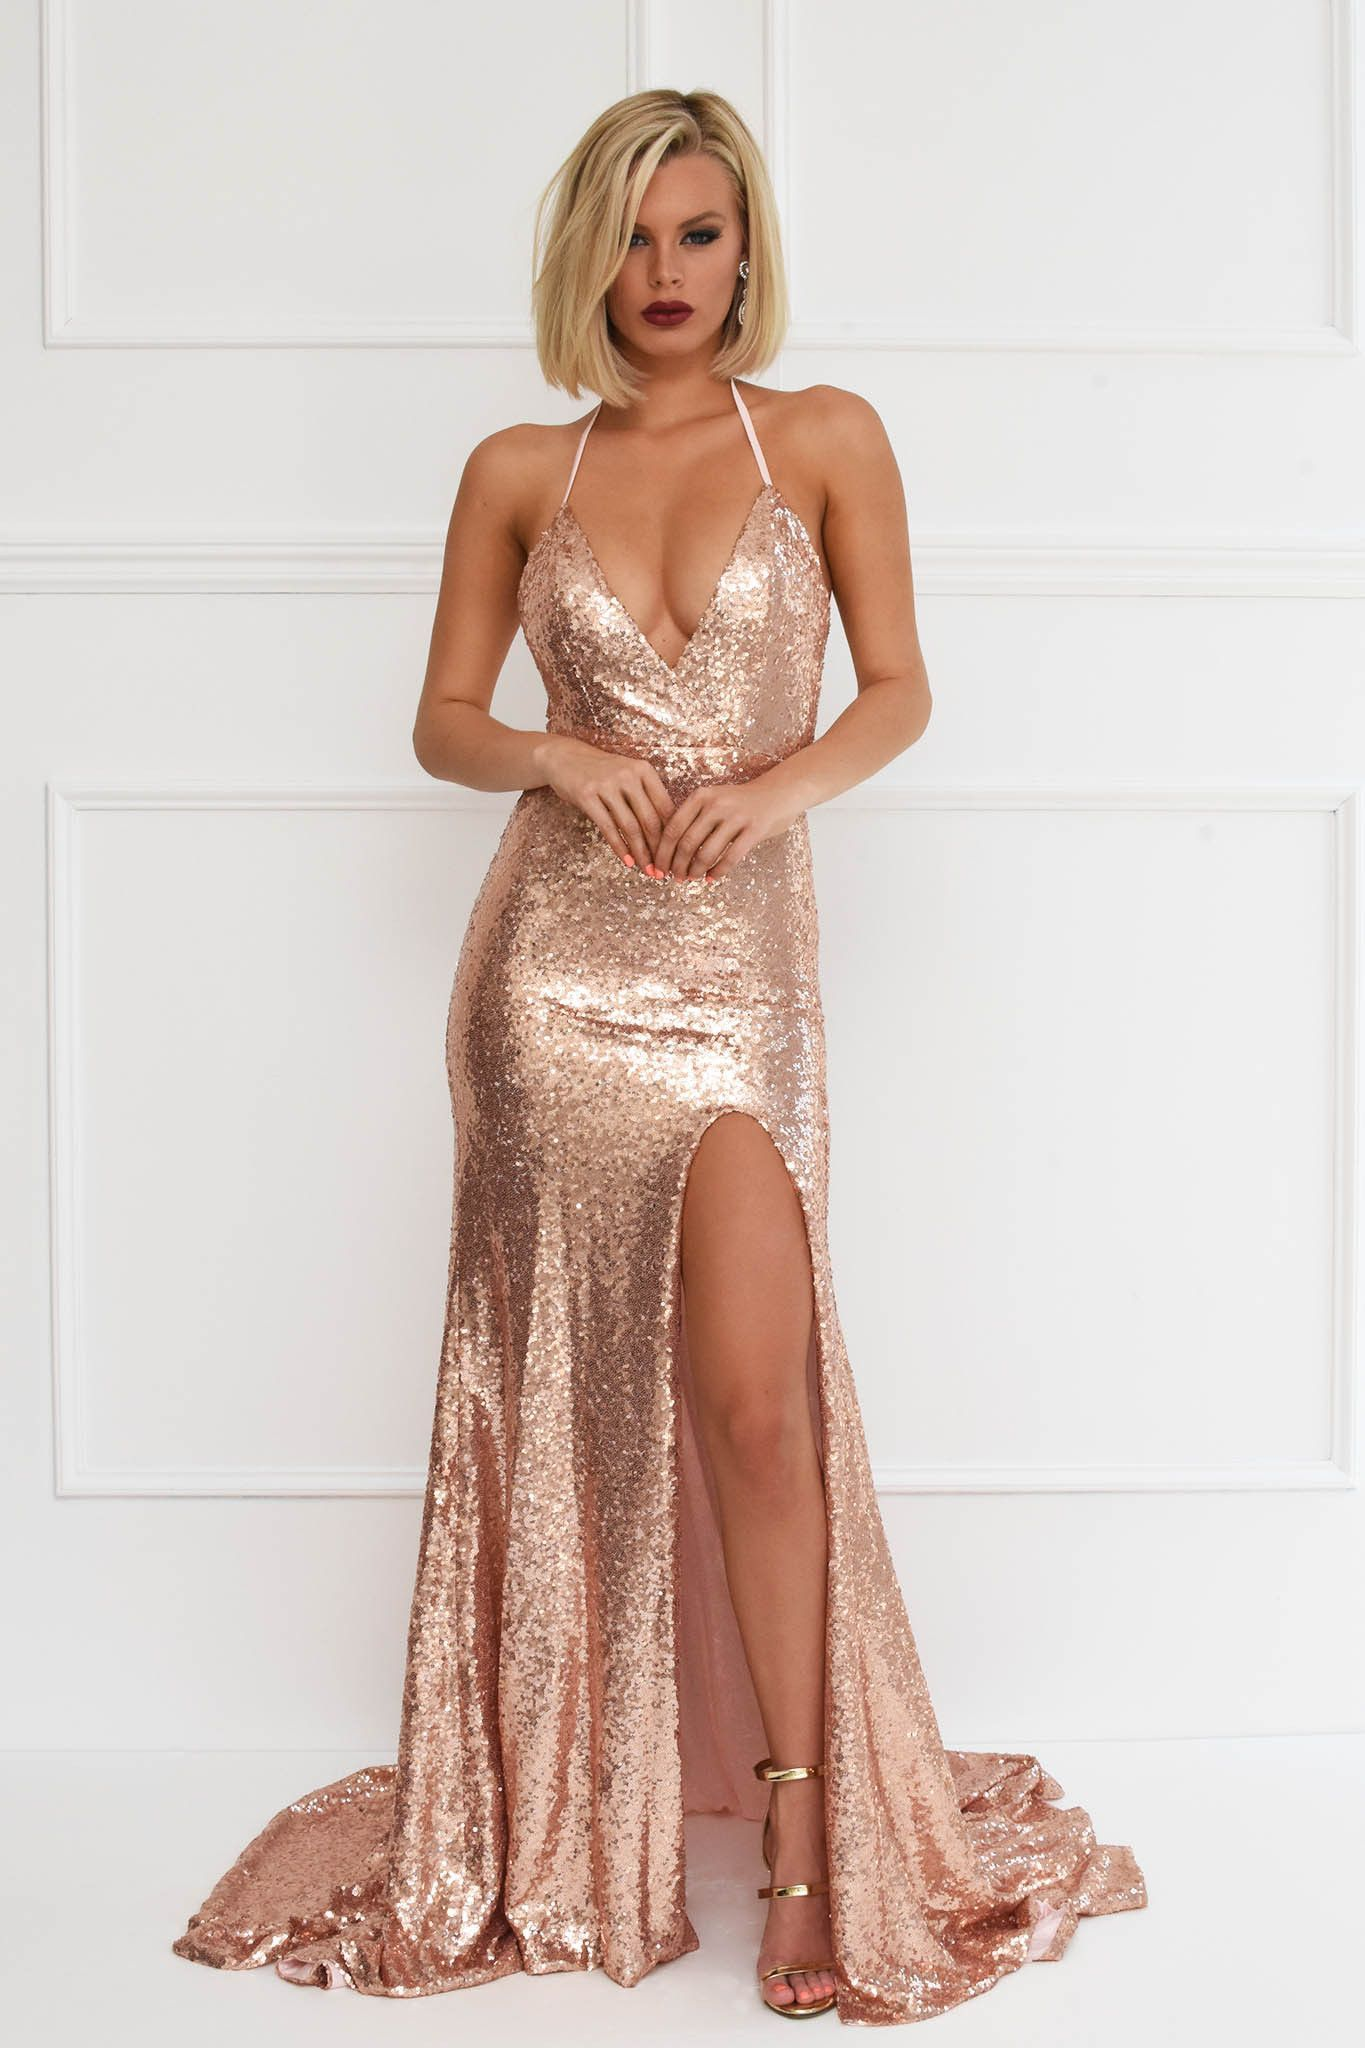 Rose gold sequin evening formal mermaid gown with high front leg